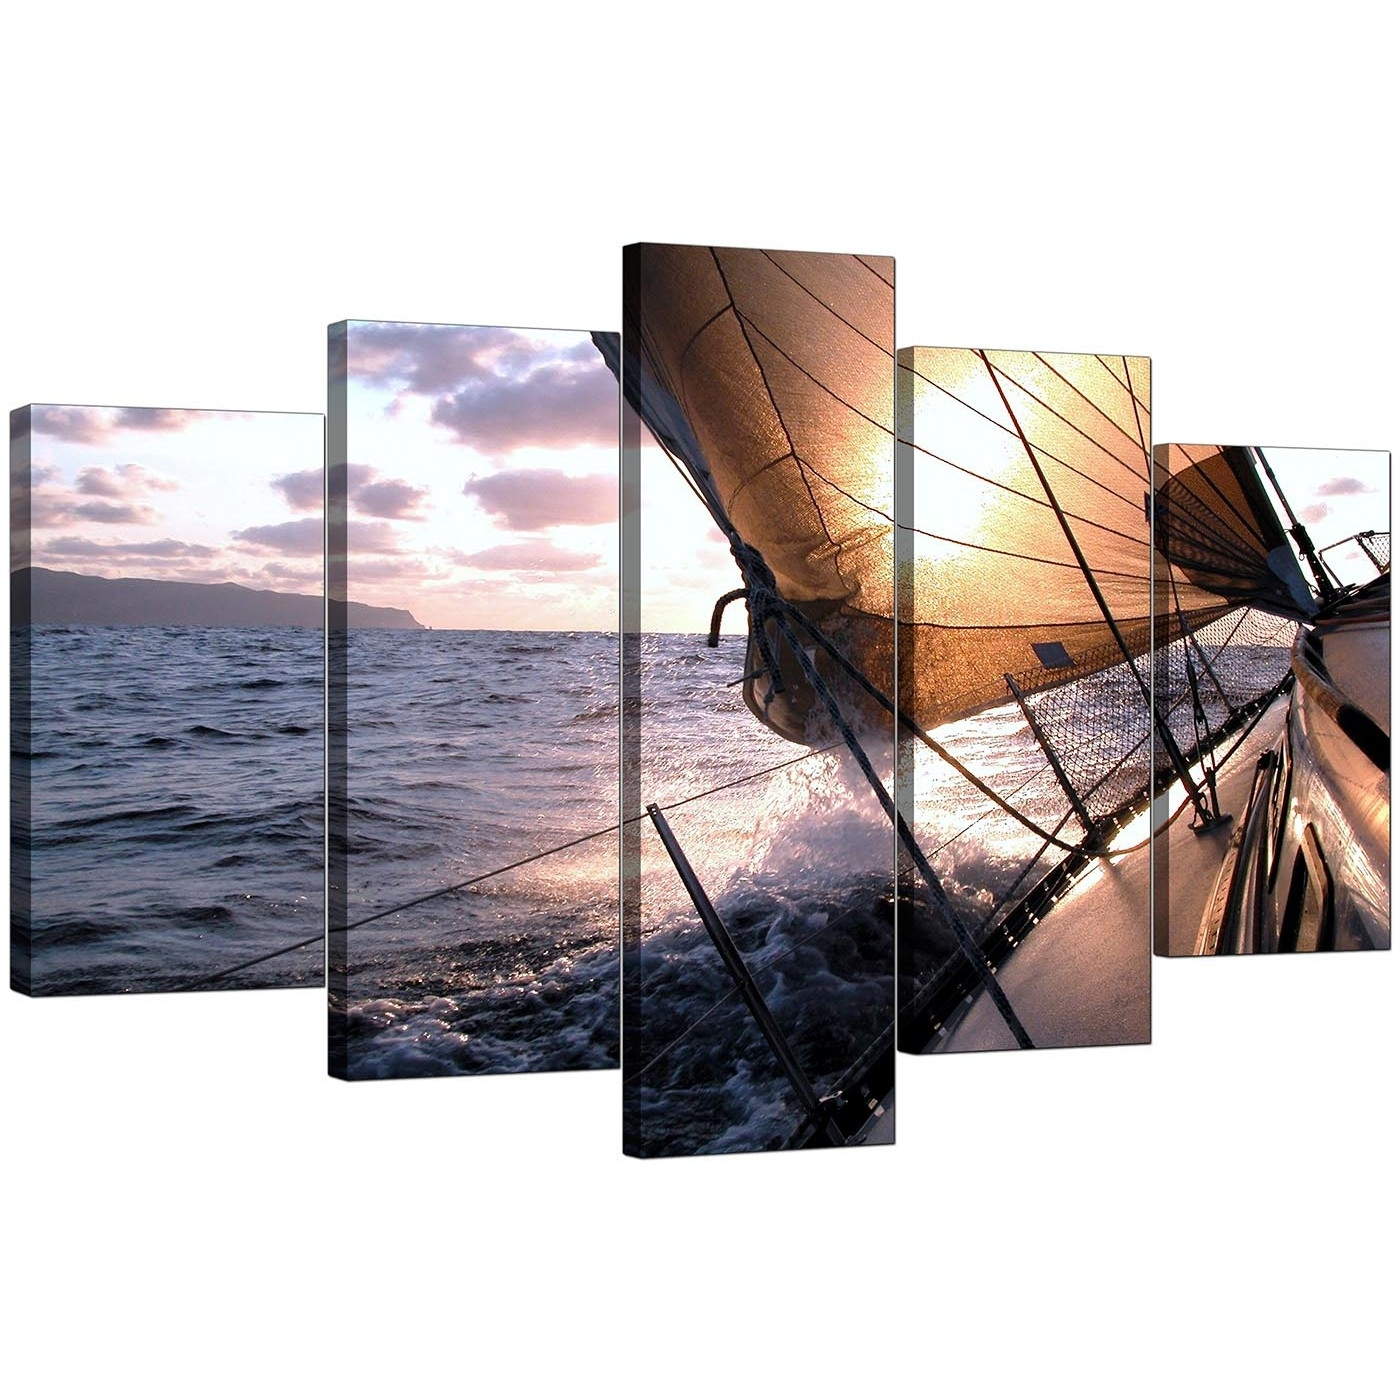 Boat Canvas Prints Uk For Your Living Room - 5 Piece intended for 5 Piece Canvas Wall Art (Image 10 of 20)